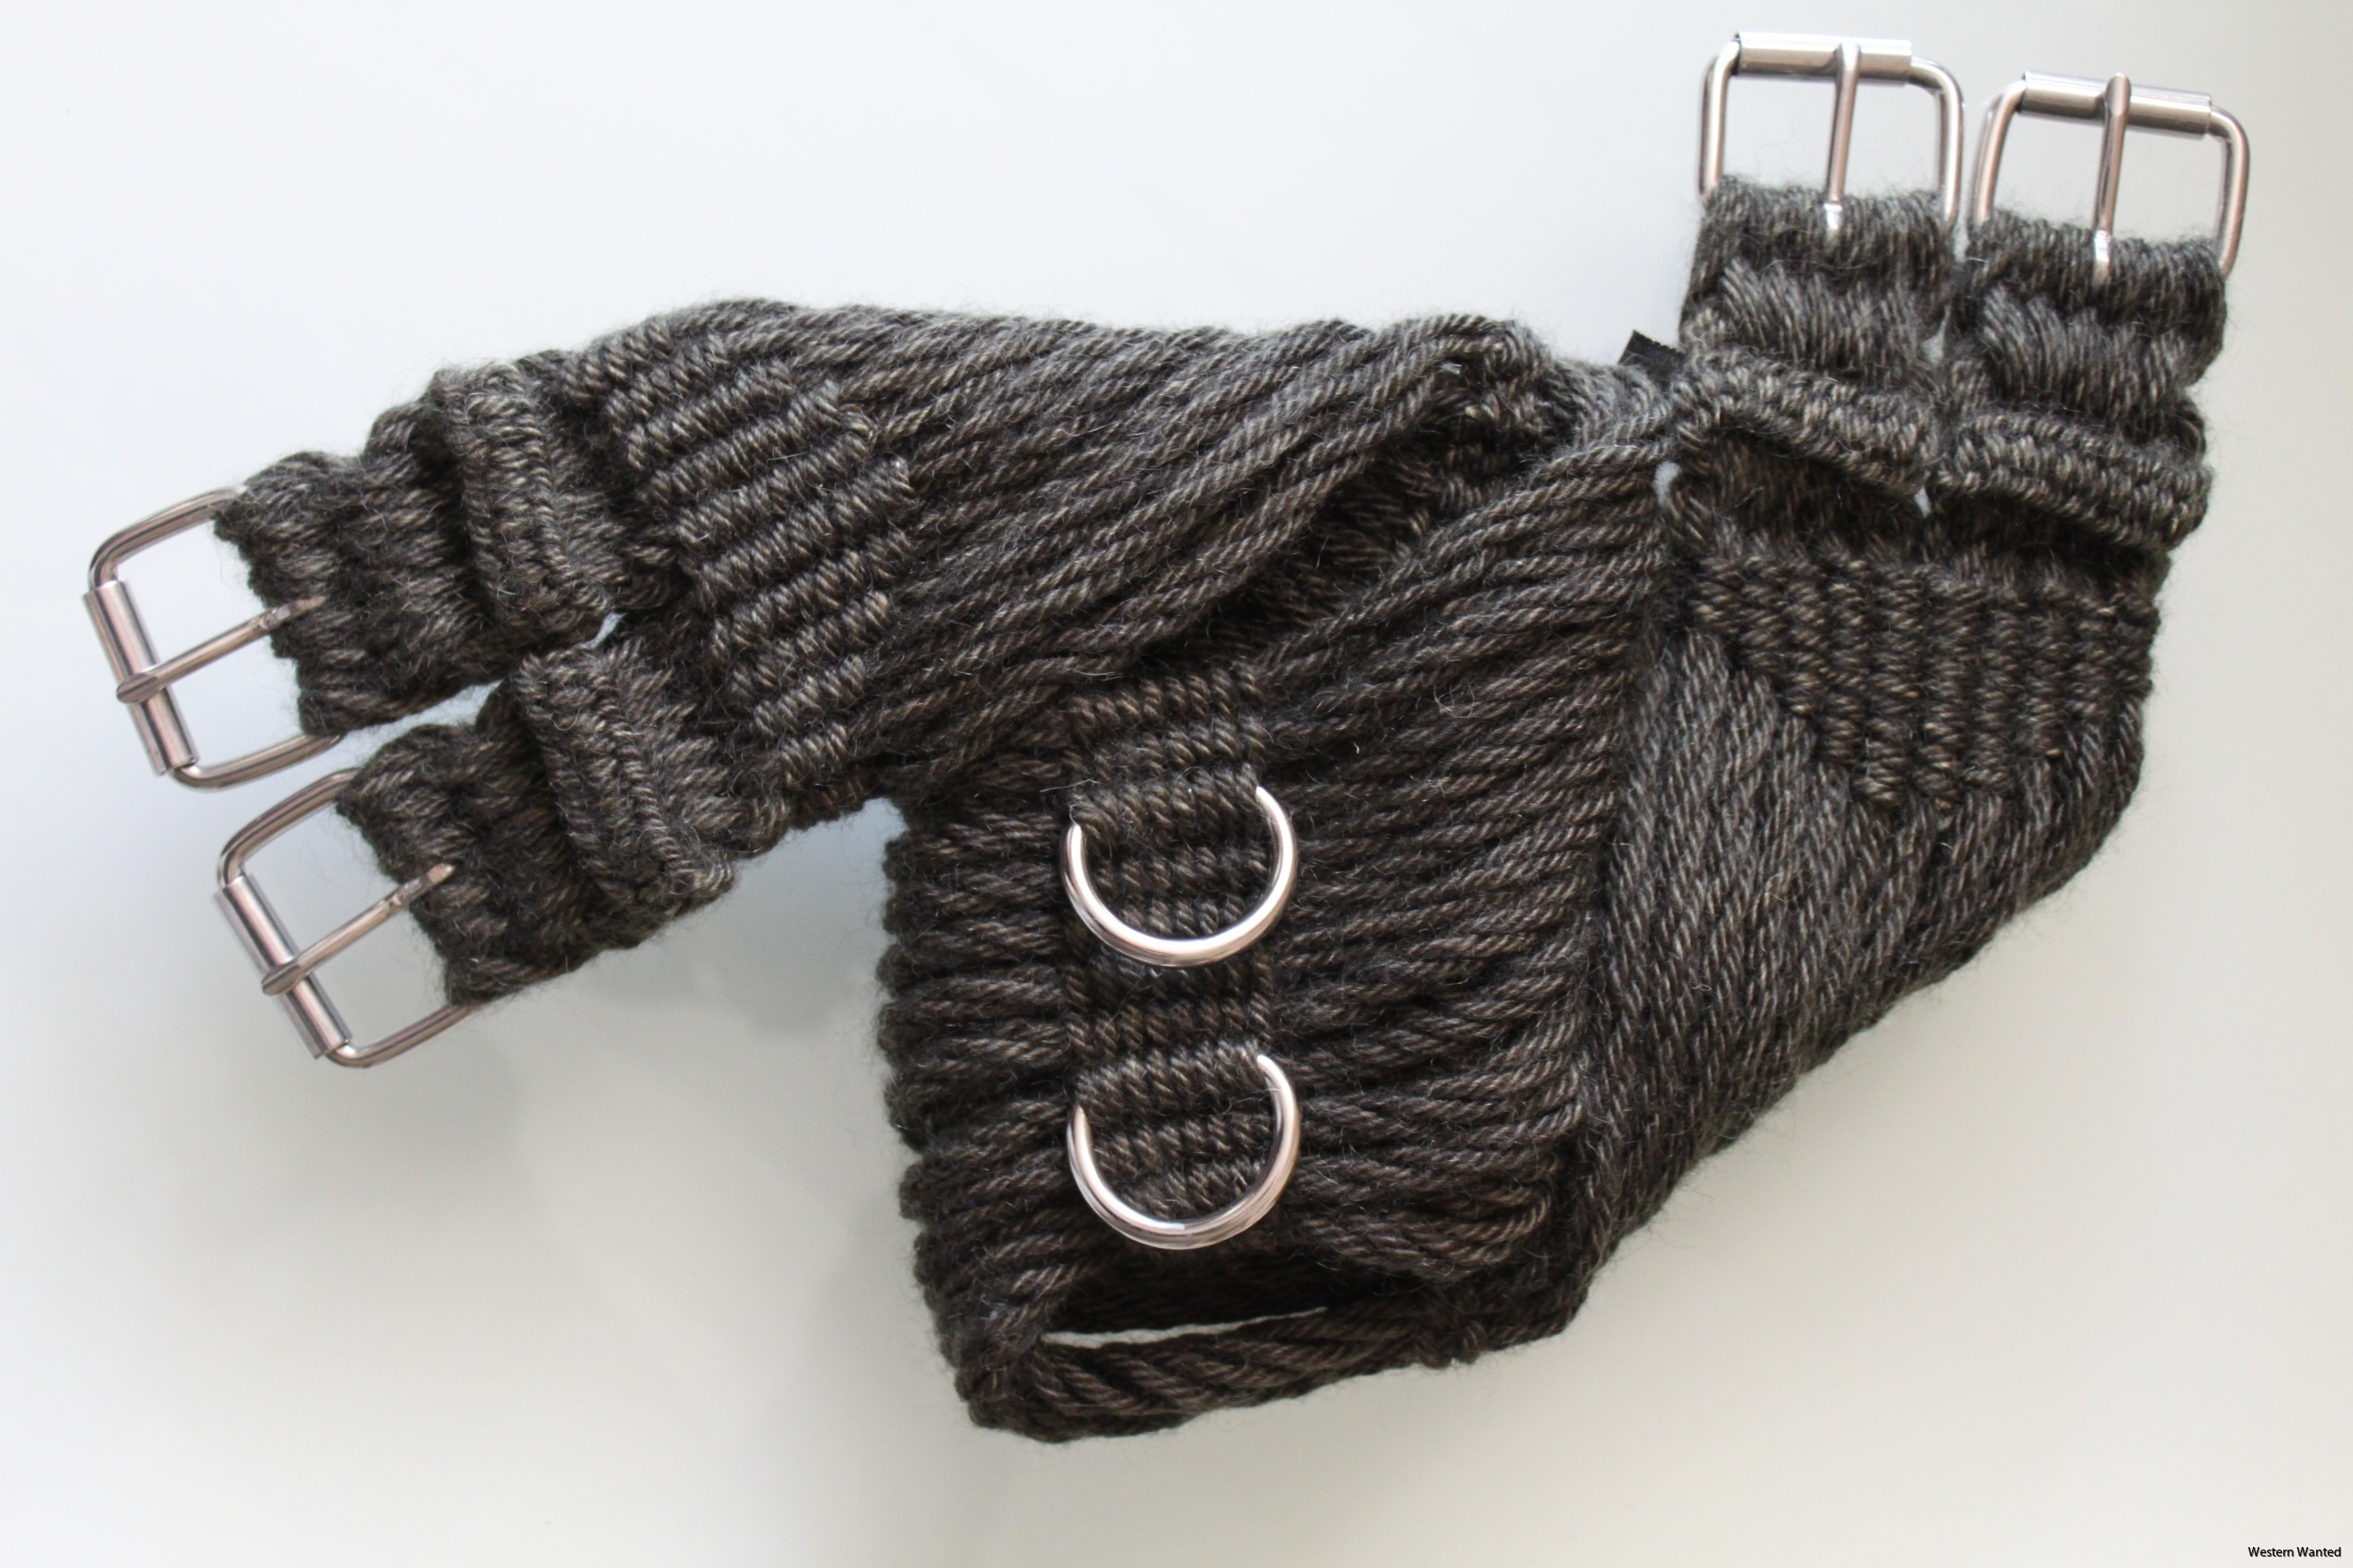 English Mohair Girth Saddle Rigging - Fir 16 ply